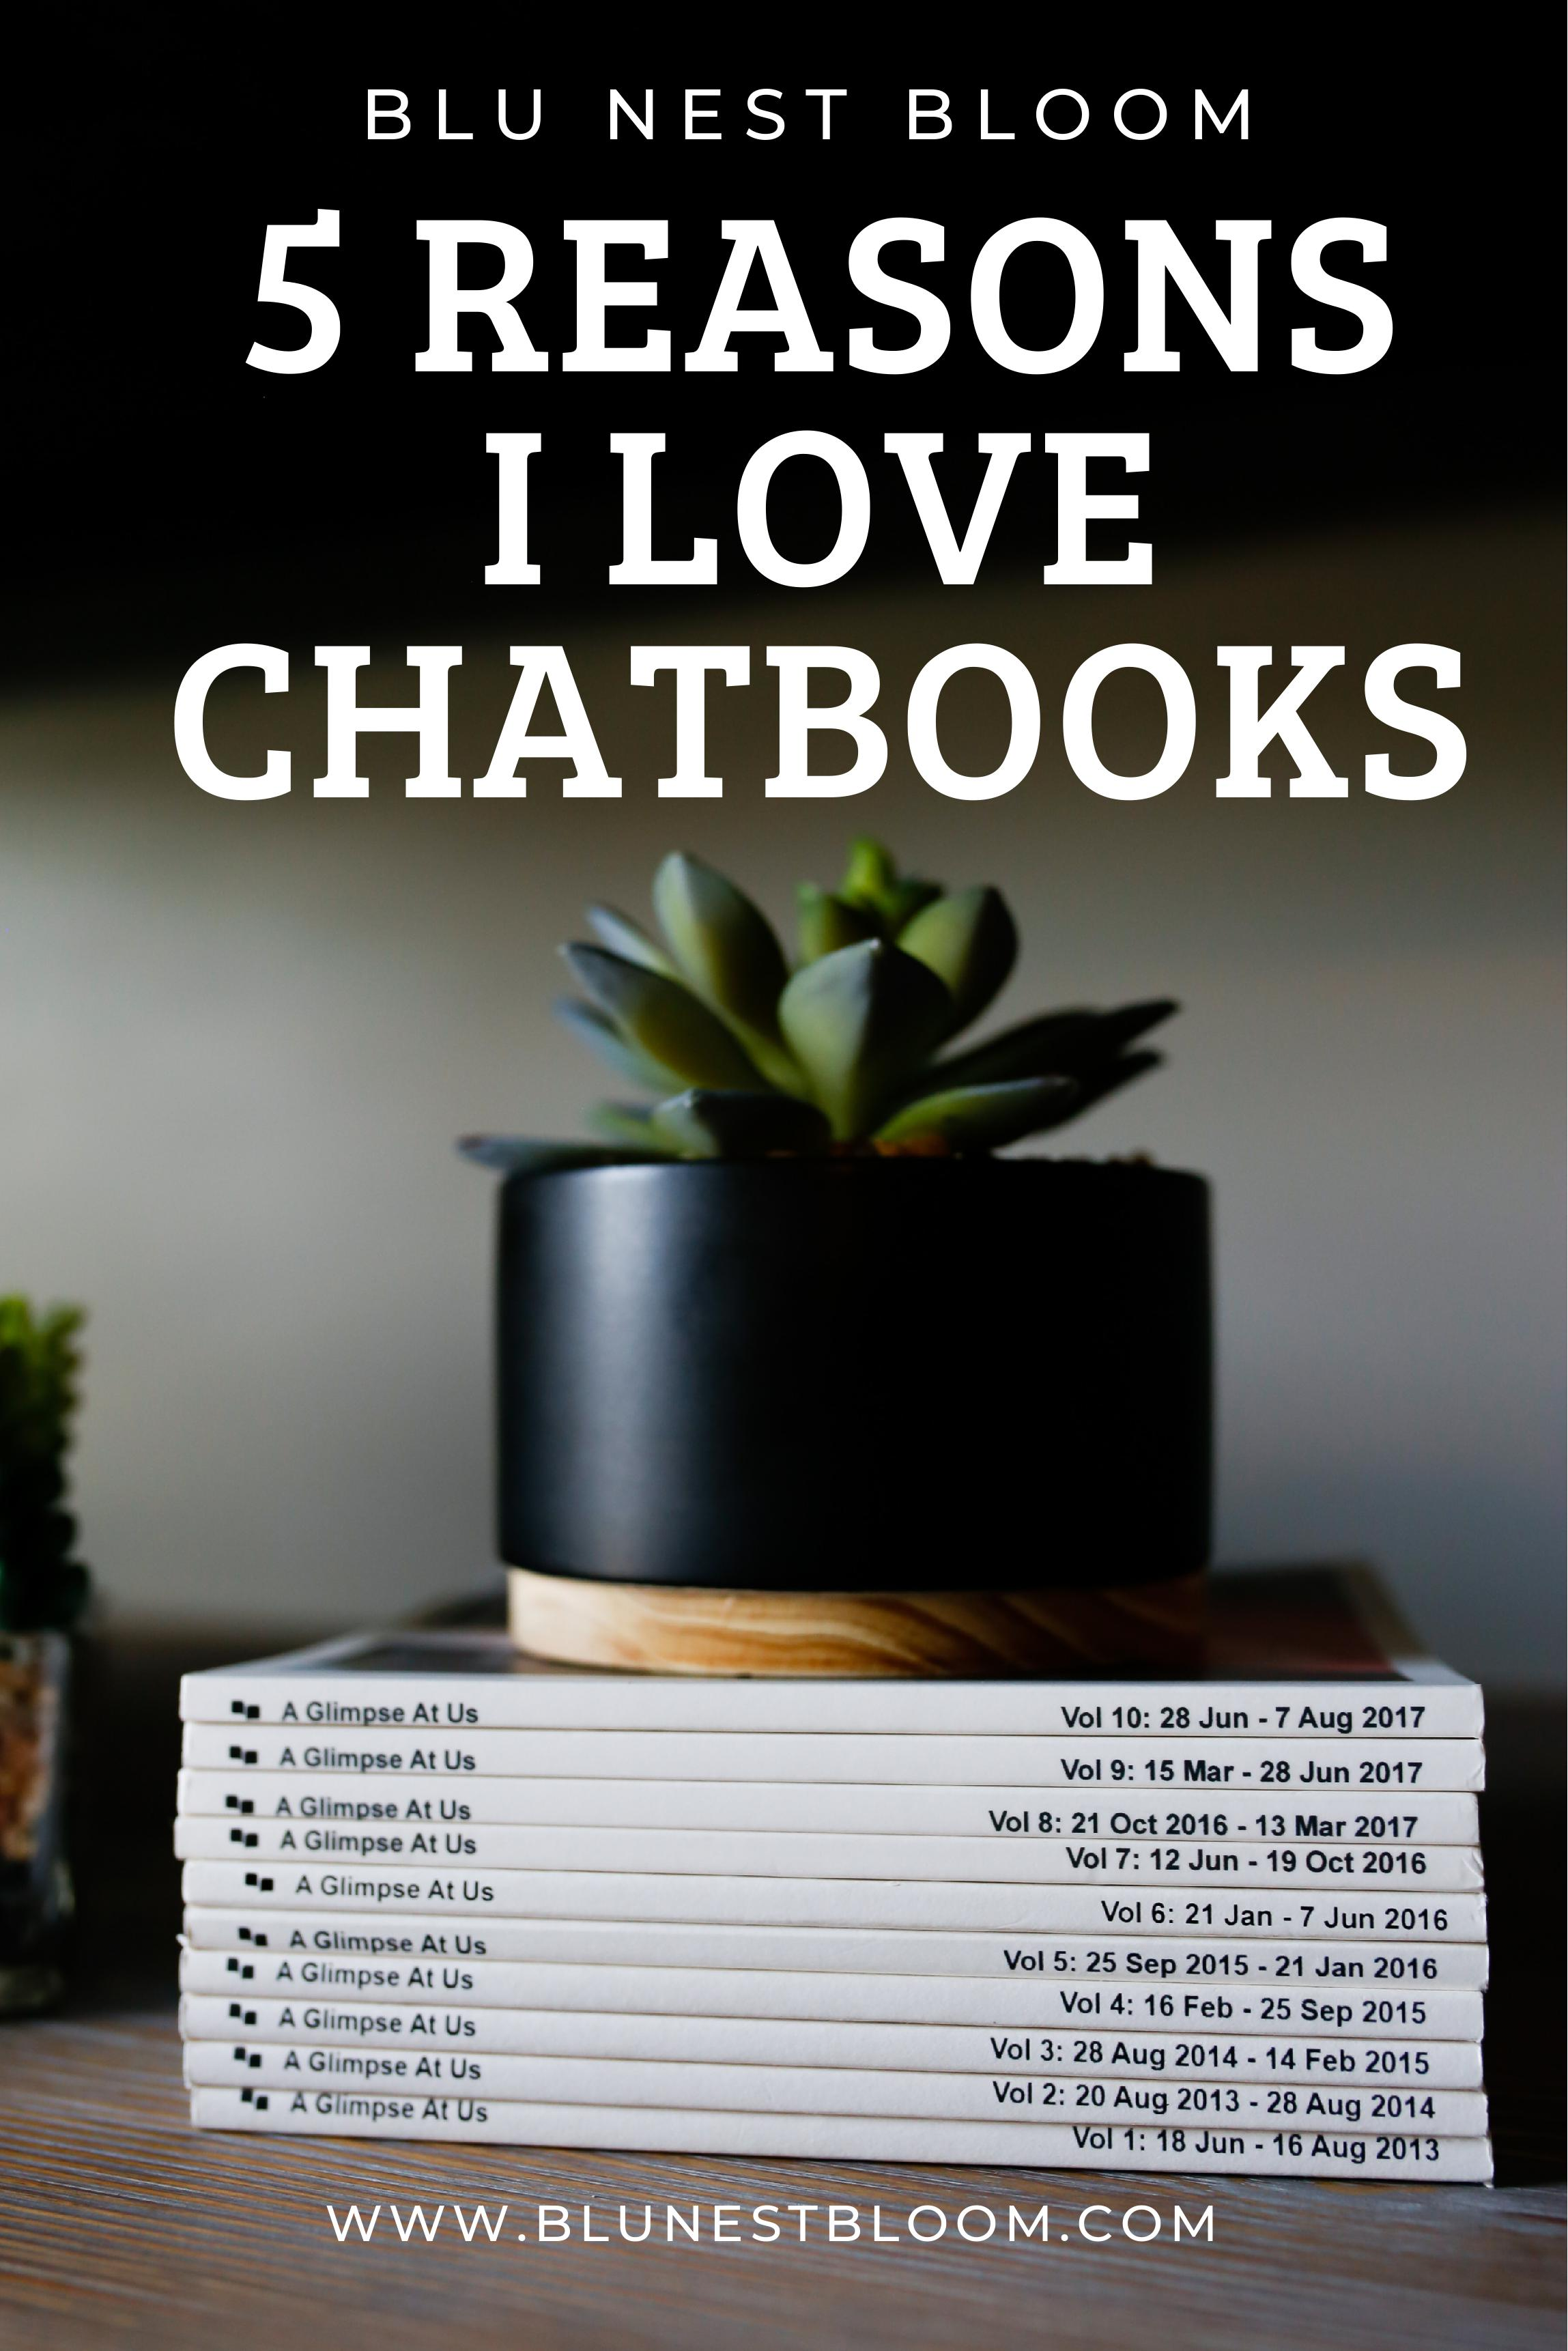 pinterest image with stack of chatbooks photobooks